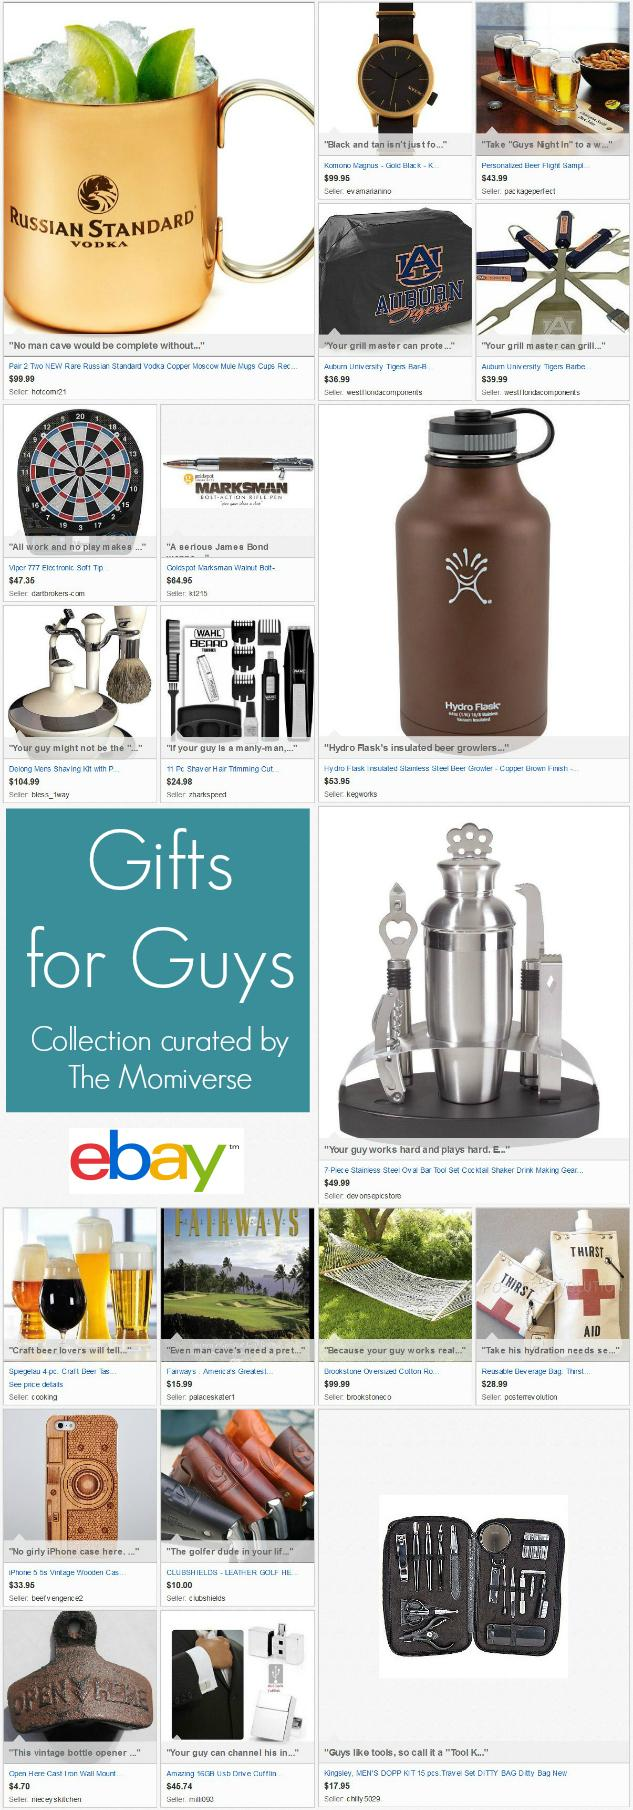 Gifts for Guys | eBay Collection curated by The Momiverse | Gift Guide